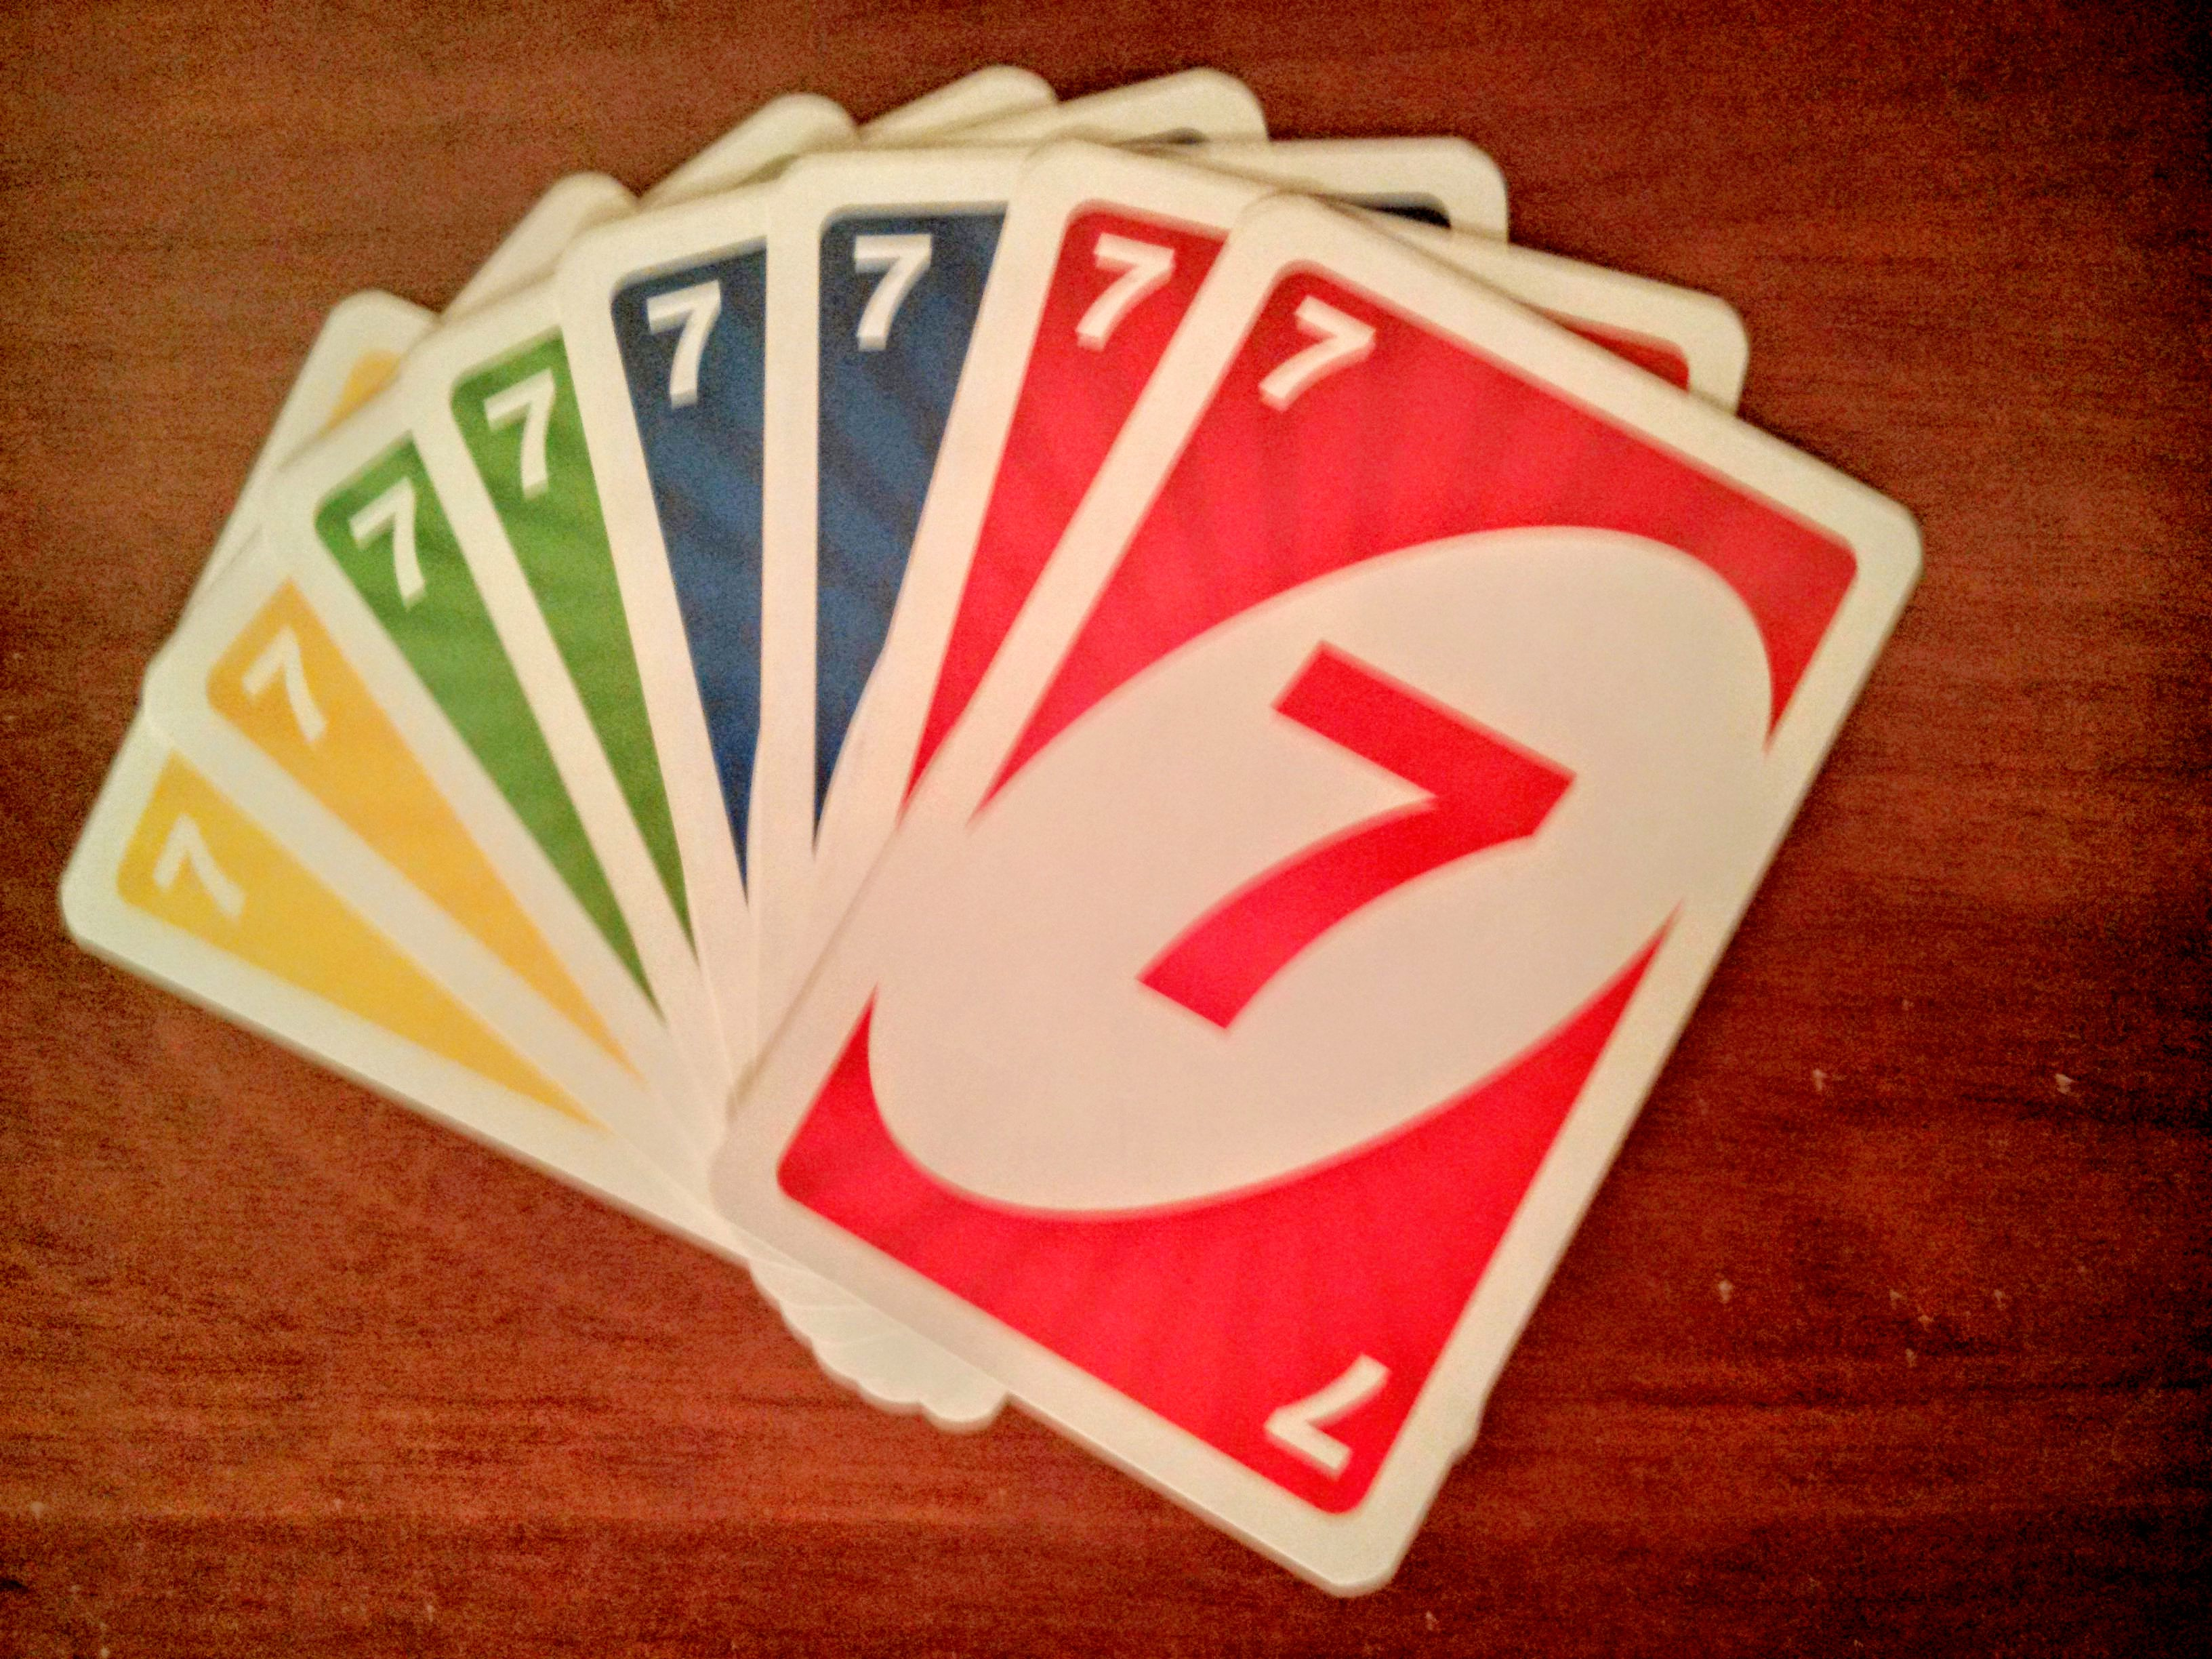 multiple Uno cards, all of them are sevens.